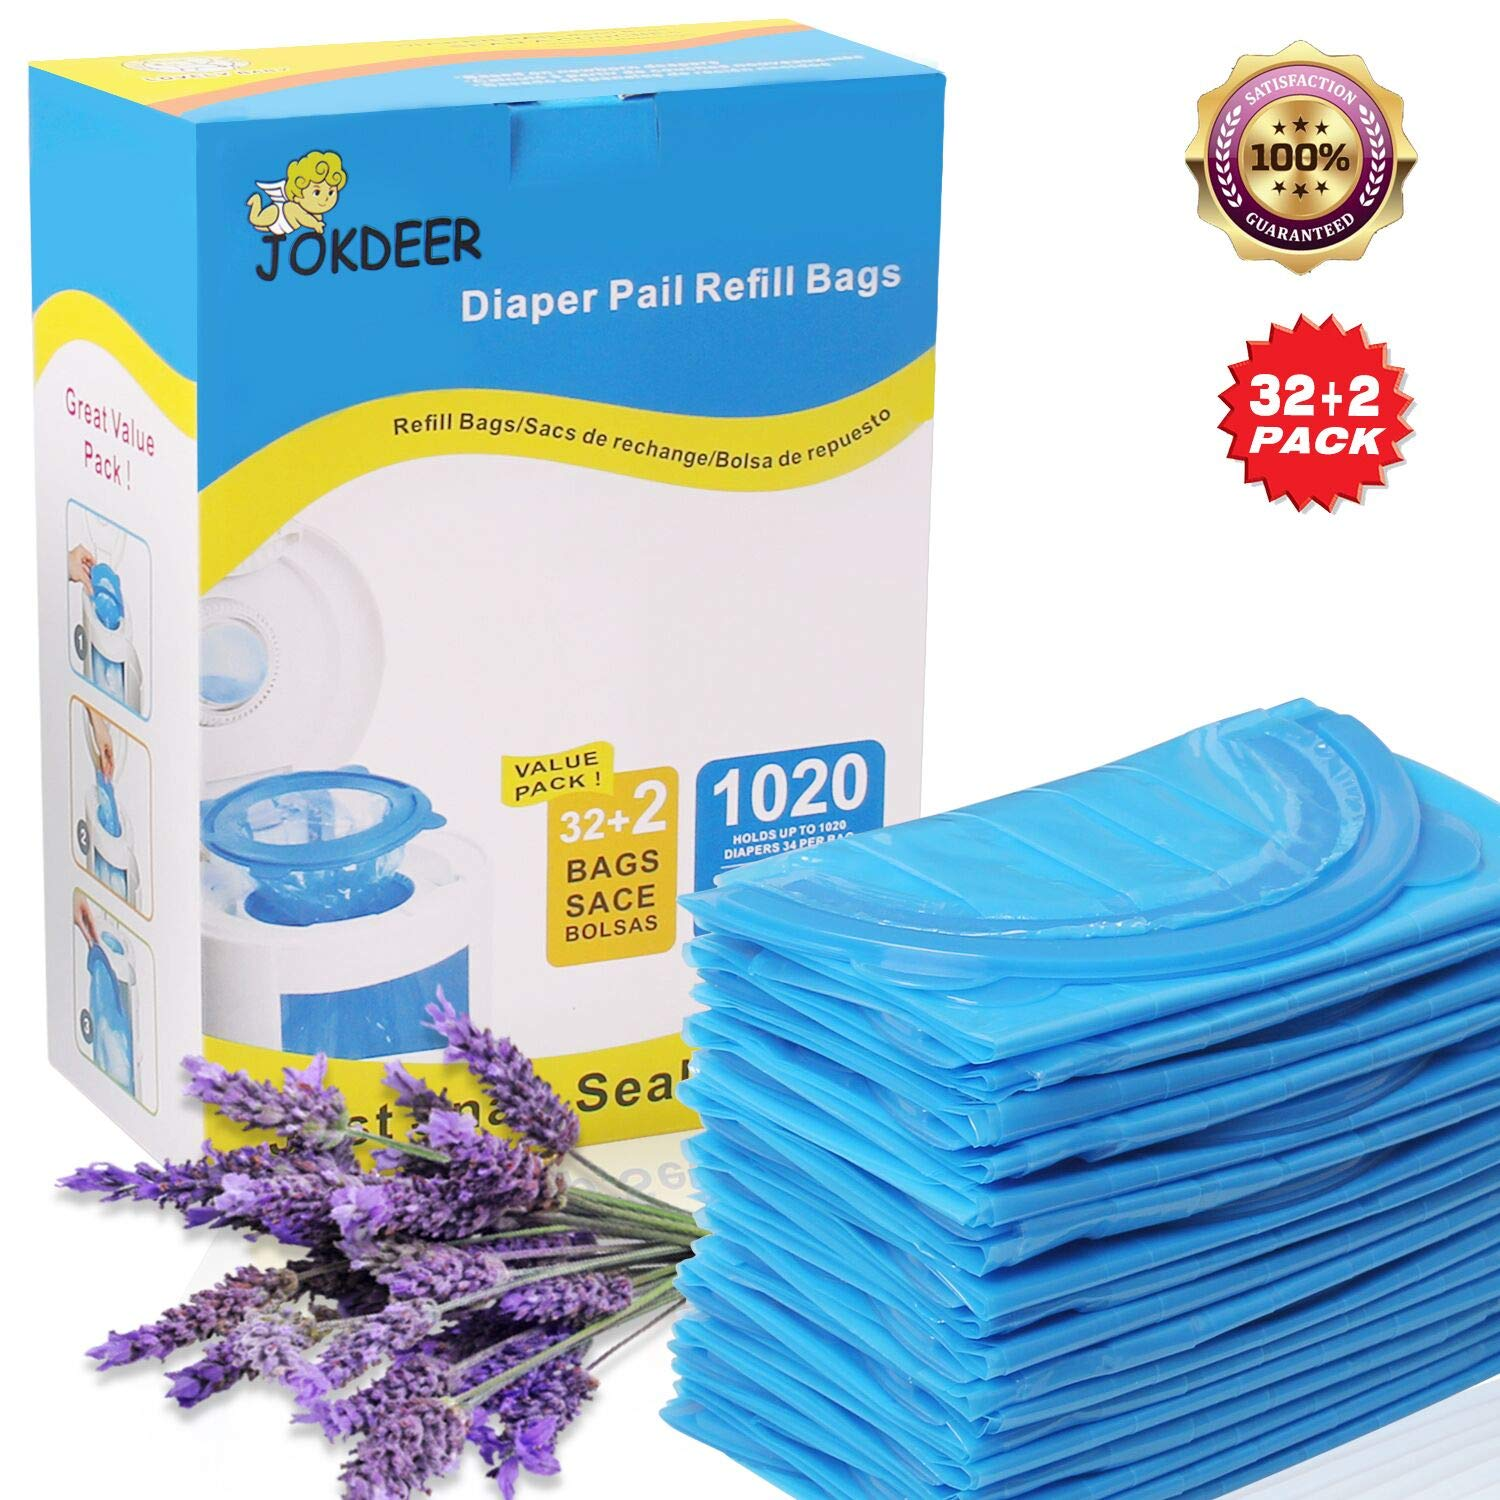 JOKDEER Diaper Pail Refill Bags 1020 Counts 34 Bags Fully Compatible with Arm& Hammer Disposal System Diaper Pail Snap Seal and Toss Refill Bags arm & hammer